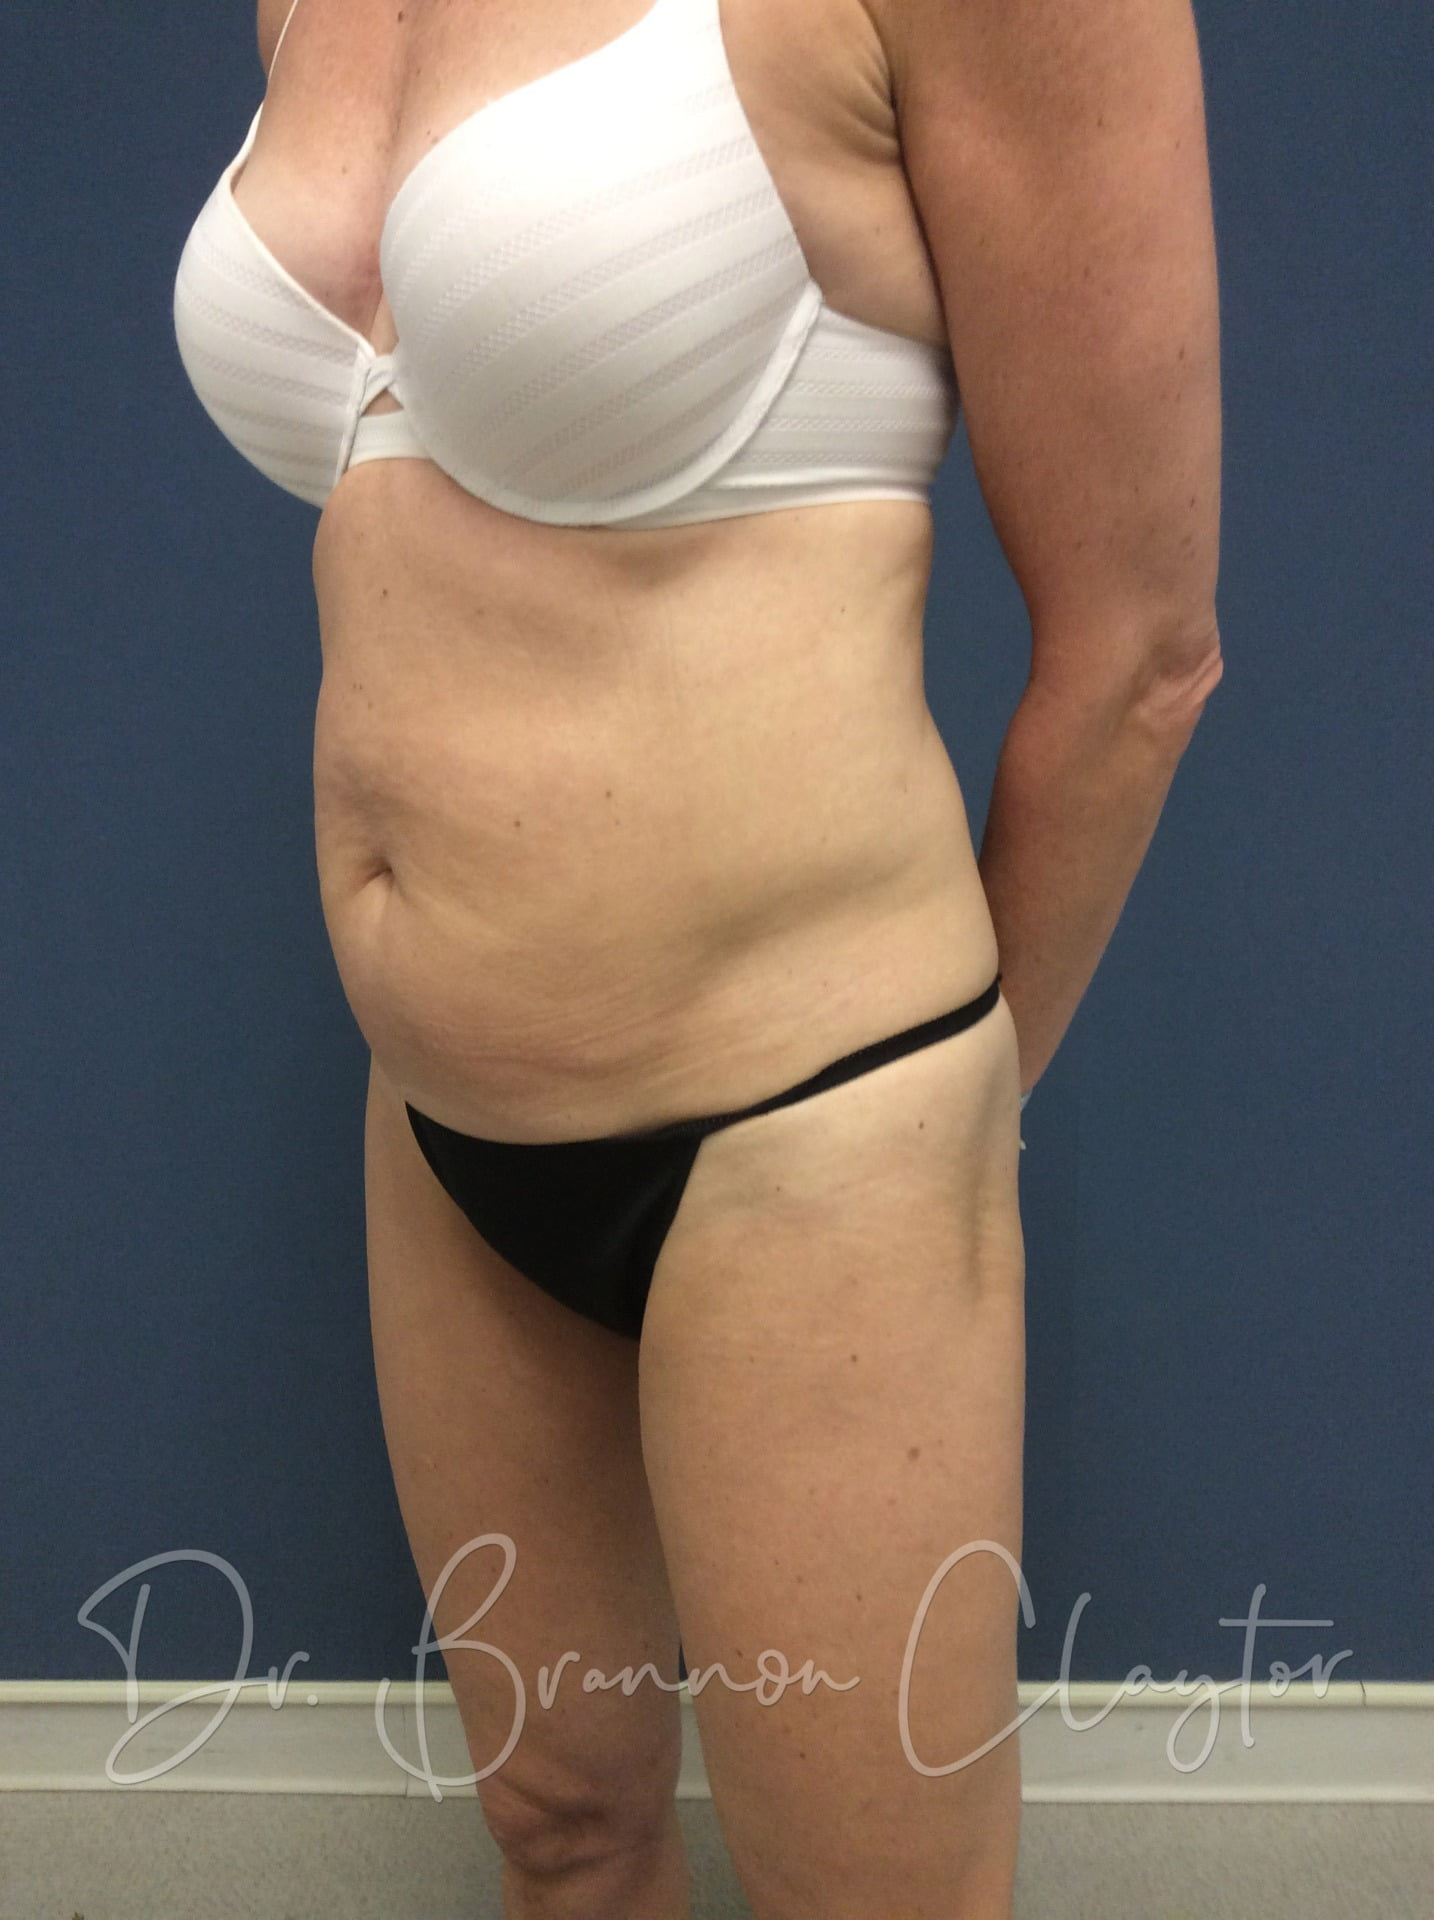 58 Year Old 1 treatment of CoolSculpting Before